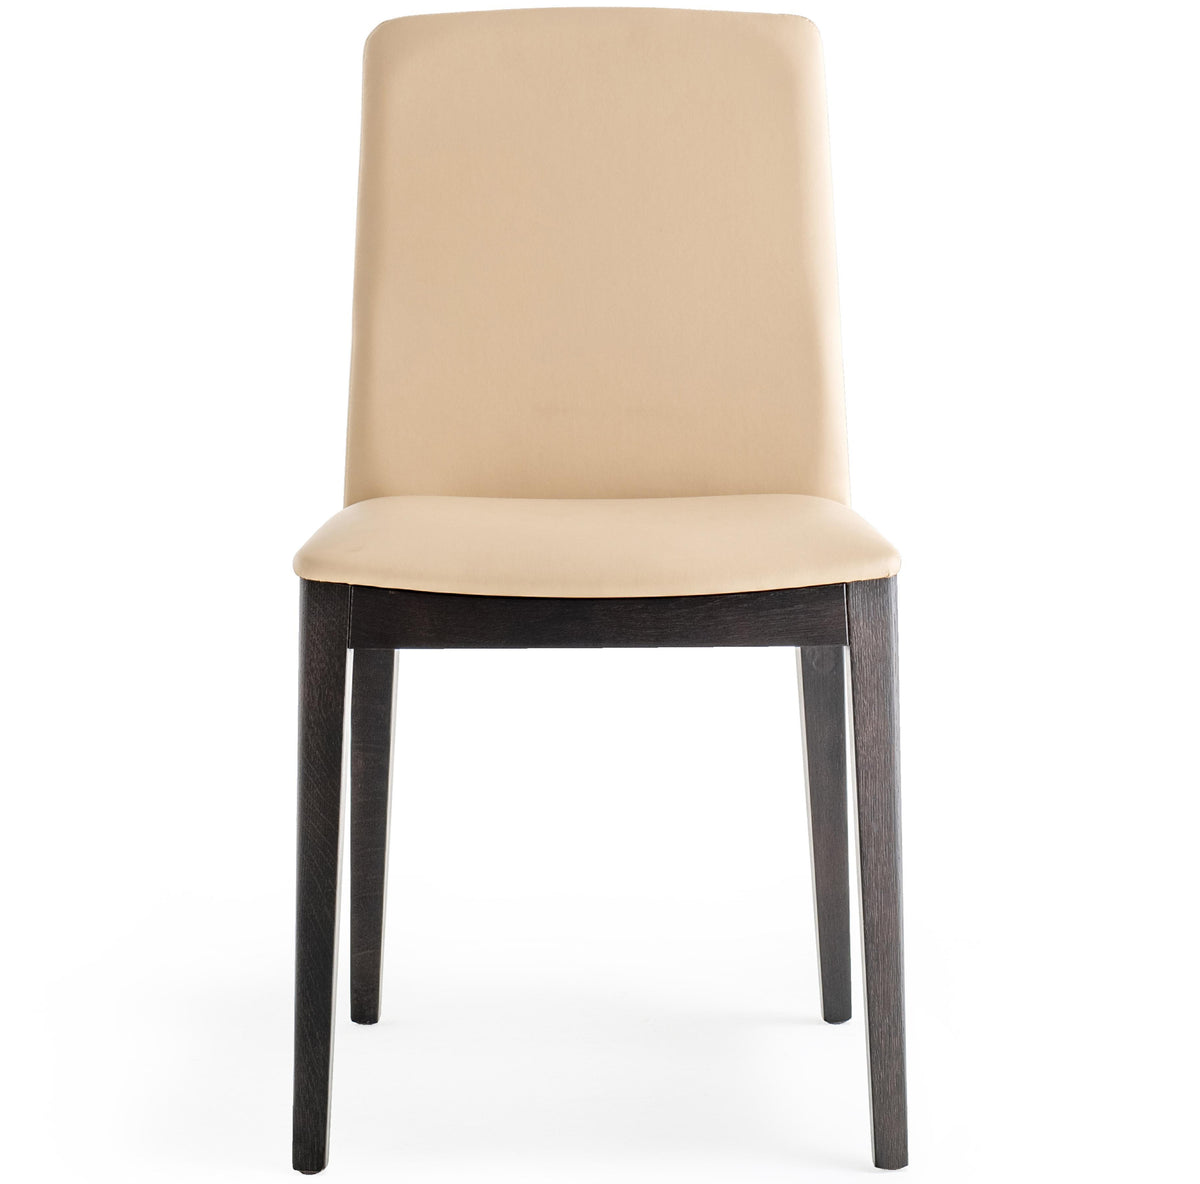 Allure 735 Side Chair-Pedrali-Contract Furniture Store